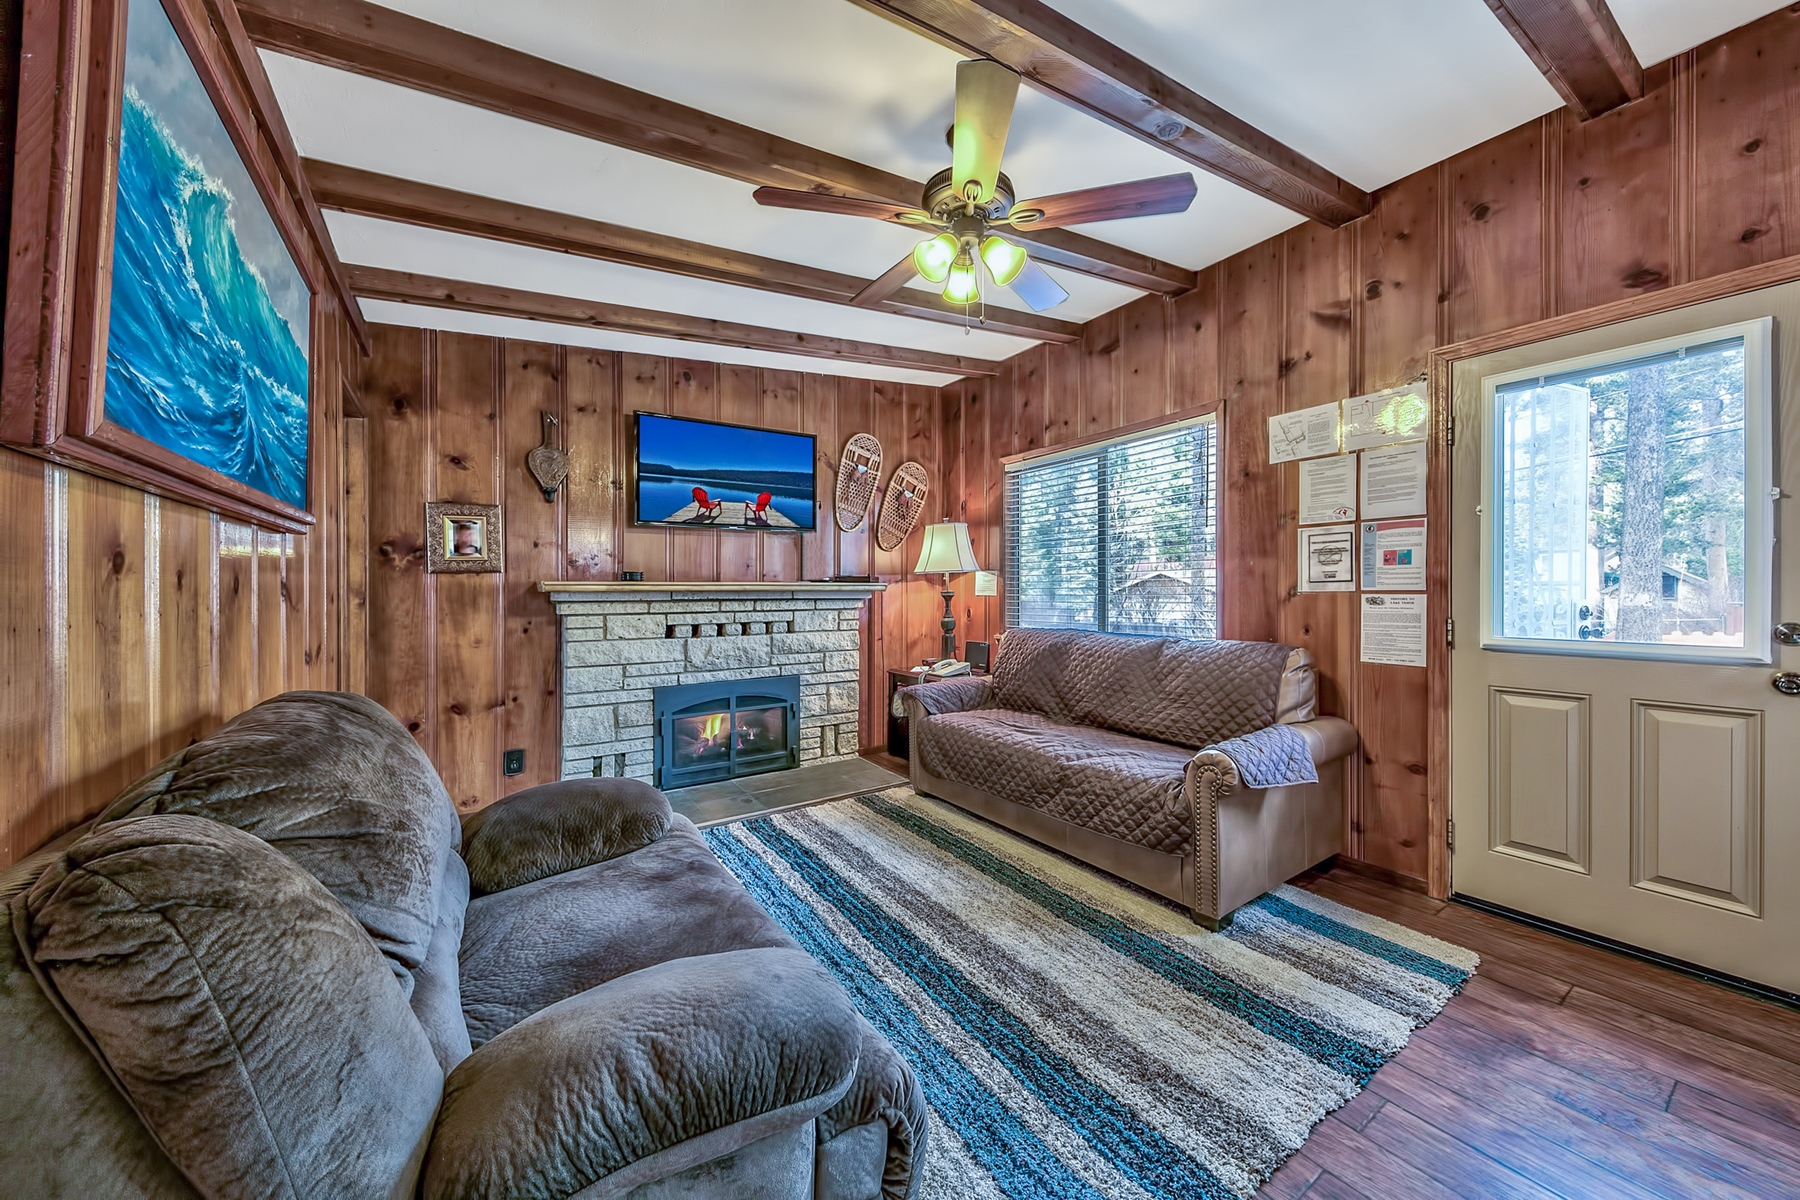 Single Family Home for Active at 1048 Glen Road, South Lake Tahoe, CA 96150 1048 Glen Road South Lake Tahoe, California 96150 United States